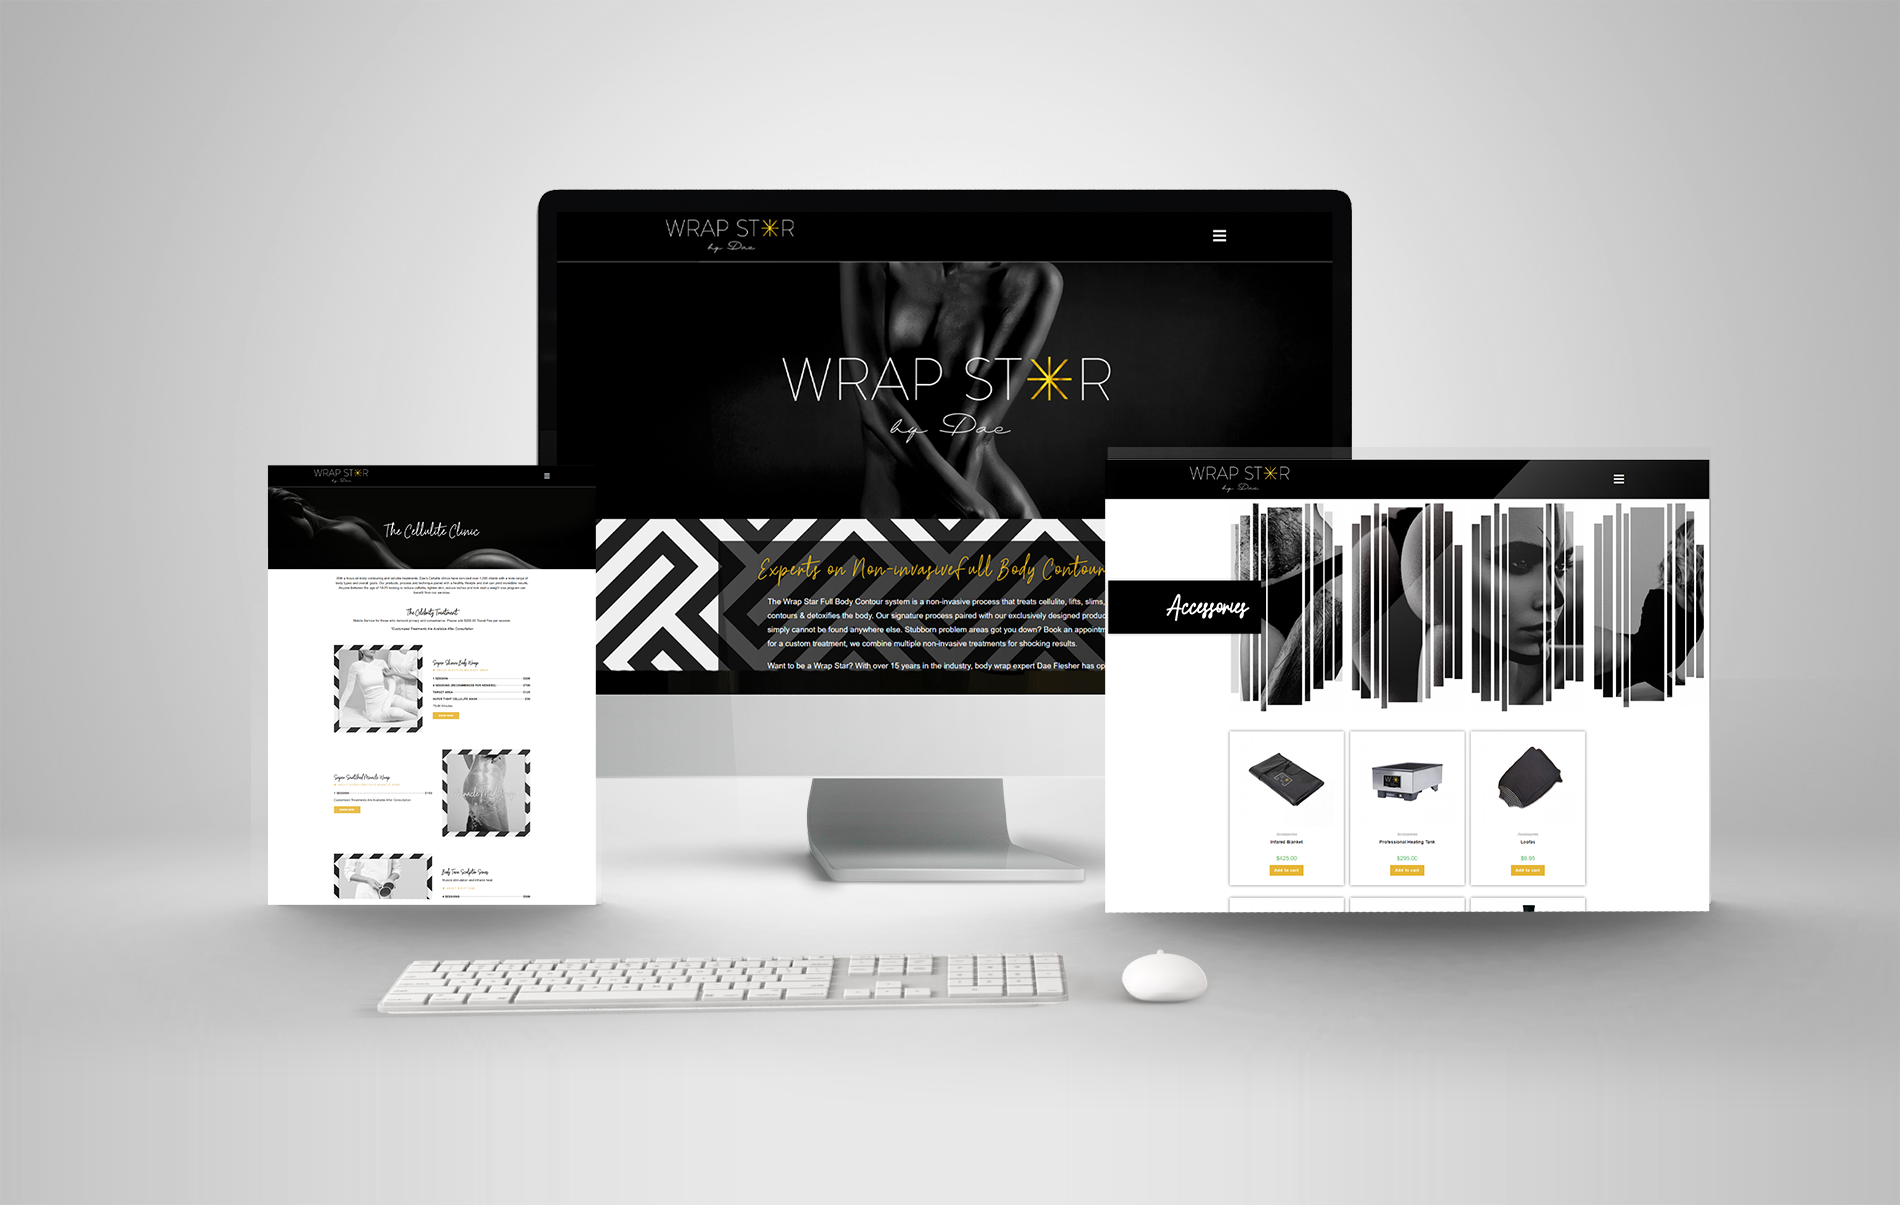 Wrap Star by Dae multi device mockup portfolio